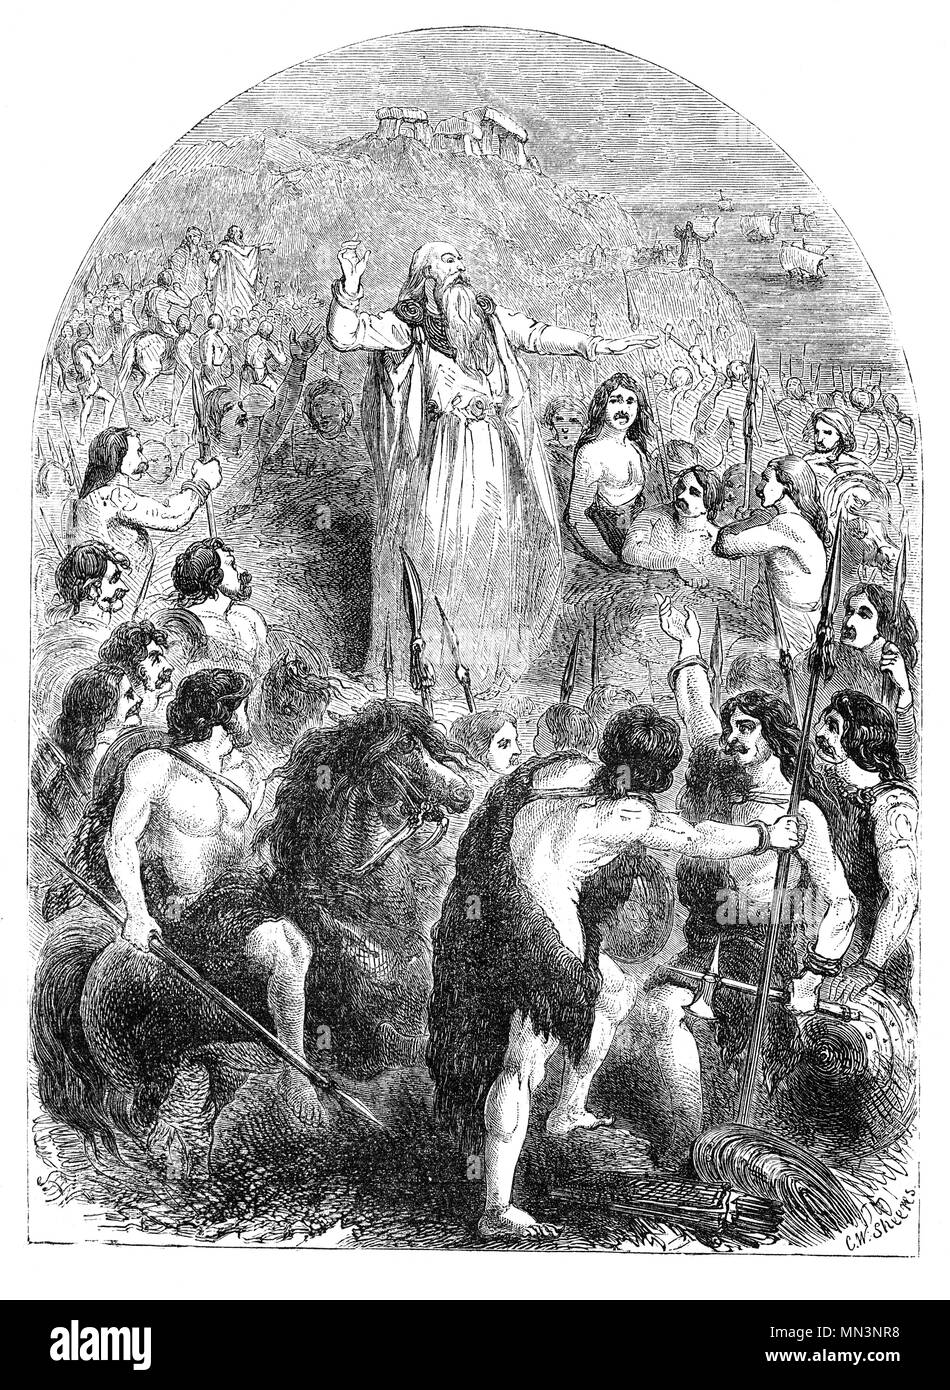 A druid inciting the Britons to oppose the Landing of the Romans. A high-ranking professional class in ancient Celtic cultures, they were best remembered as religious leaders, but they were also legal authorities, adjudicators, lorekeepers, medical professionals and political advisors. While the druids are reported to have been literate, they are believed to have been prevented by doctrine from recording their knowledge in written form, thus they left no written accounts of themselves. - Stock Image